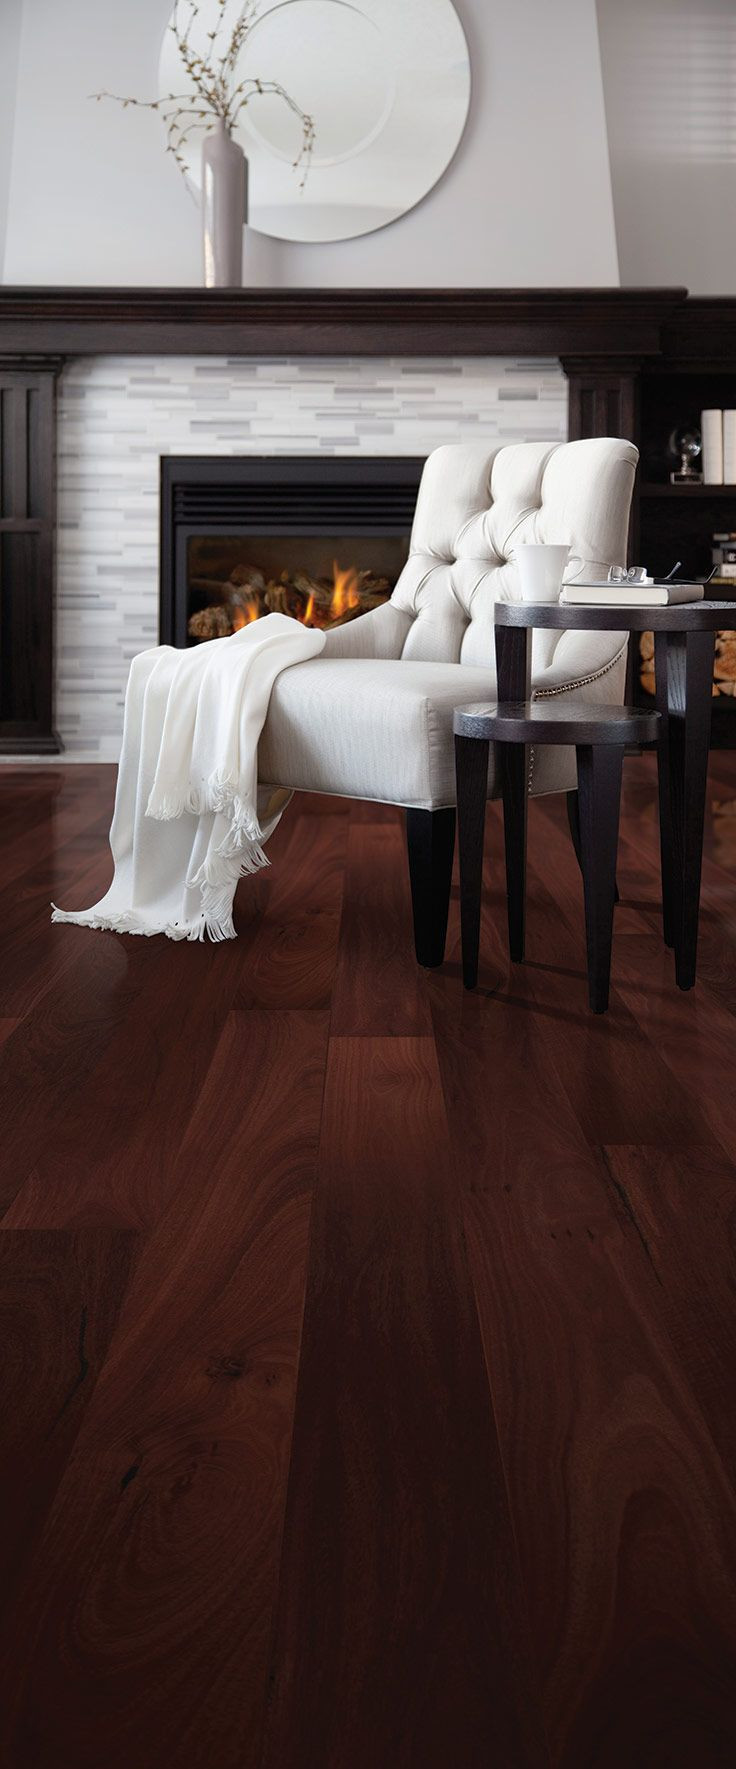 Buy Cheap Hardwood Flooring Of Godfrey Hirst Timber Flooring Get the Look with Timber Naturals for Godfrey Hirst Timber Flooring Get the Look with Timber Naturals In Jarrah Godfreyhistflooring Godfreyhirst Flooring Jarrah Timber Interiors